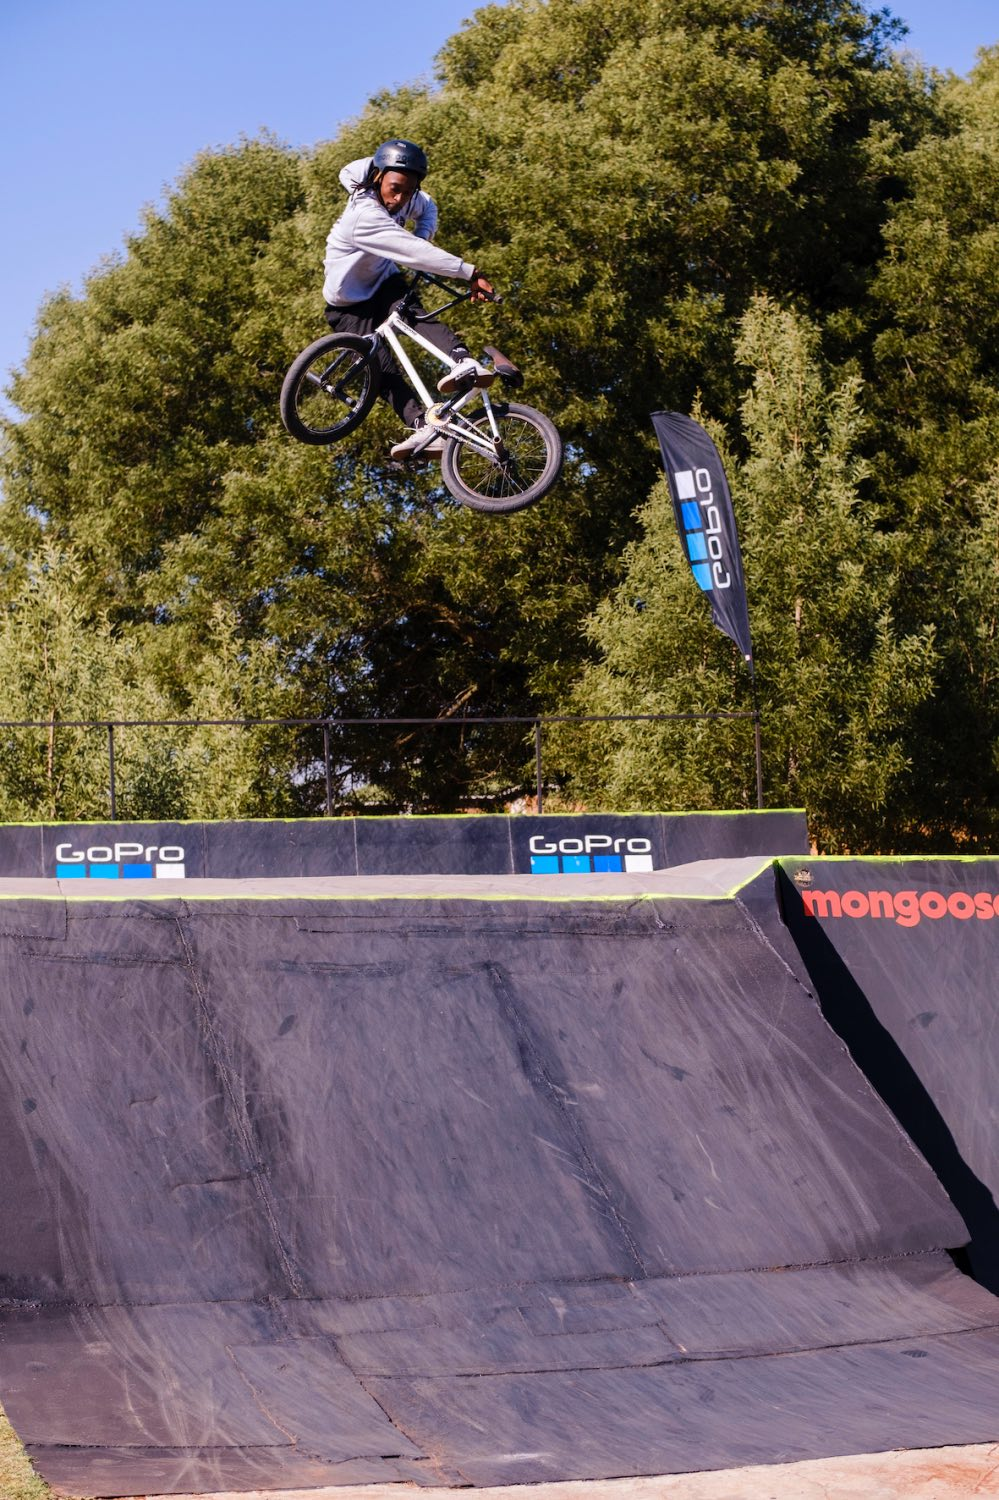 Nathi Steeze competing at the Park Lines BMX Tournament